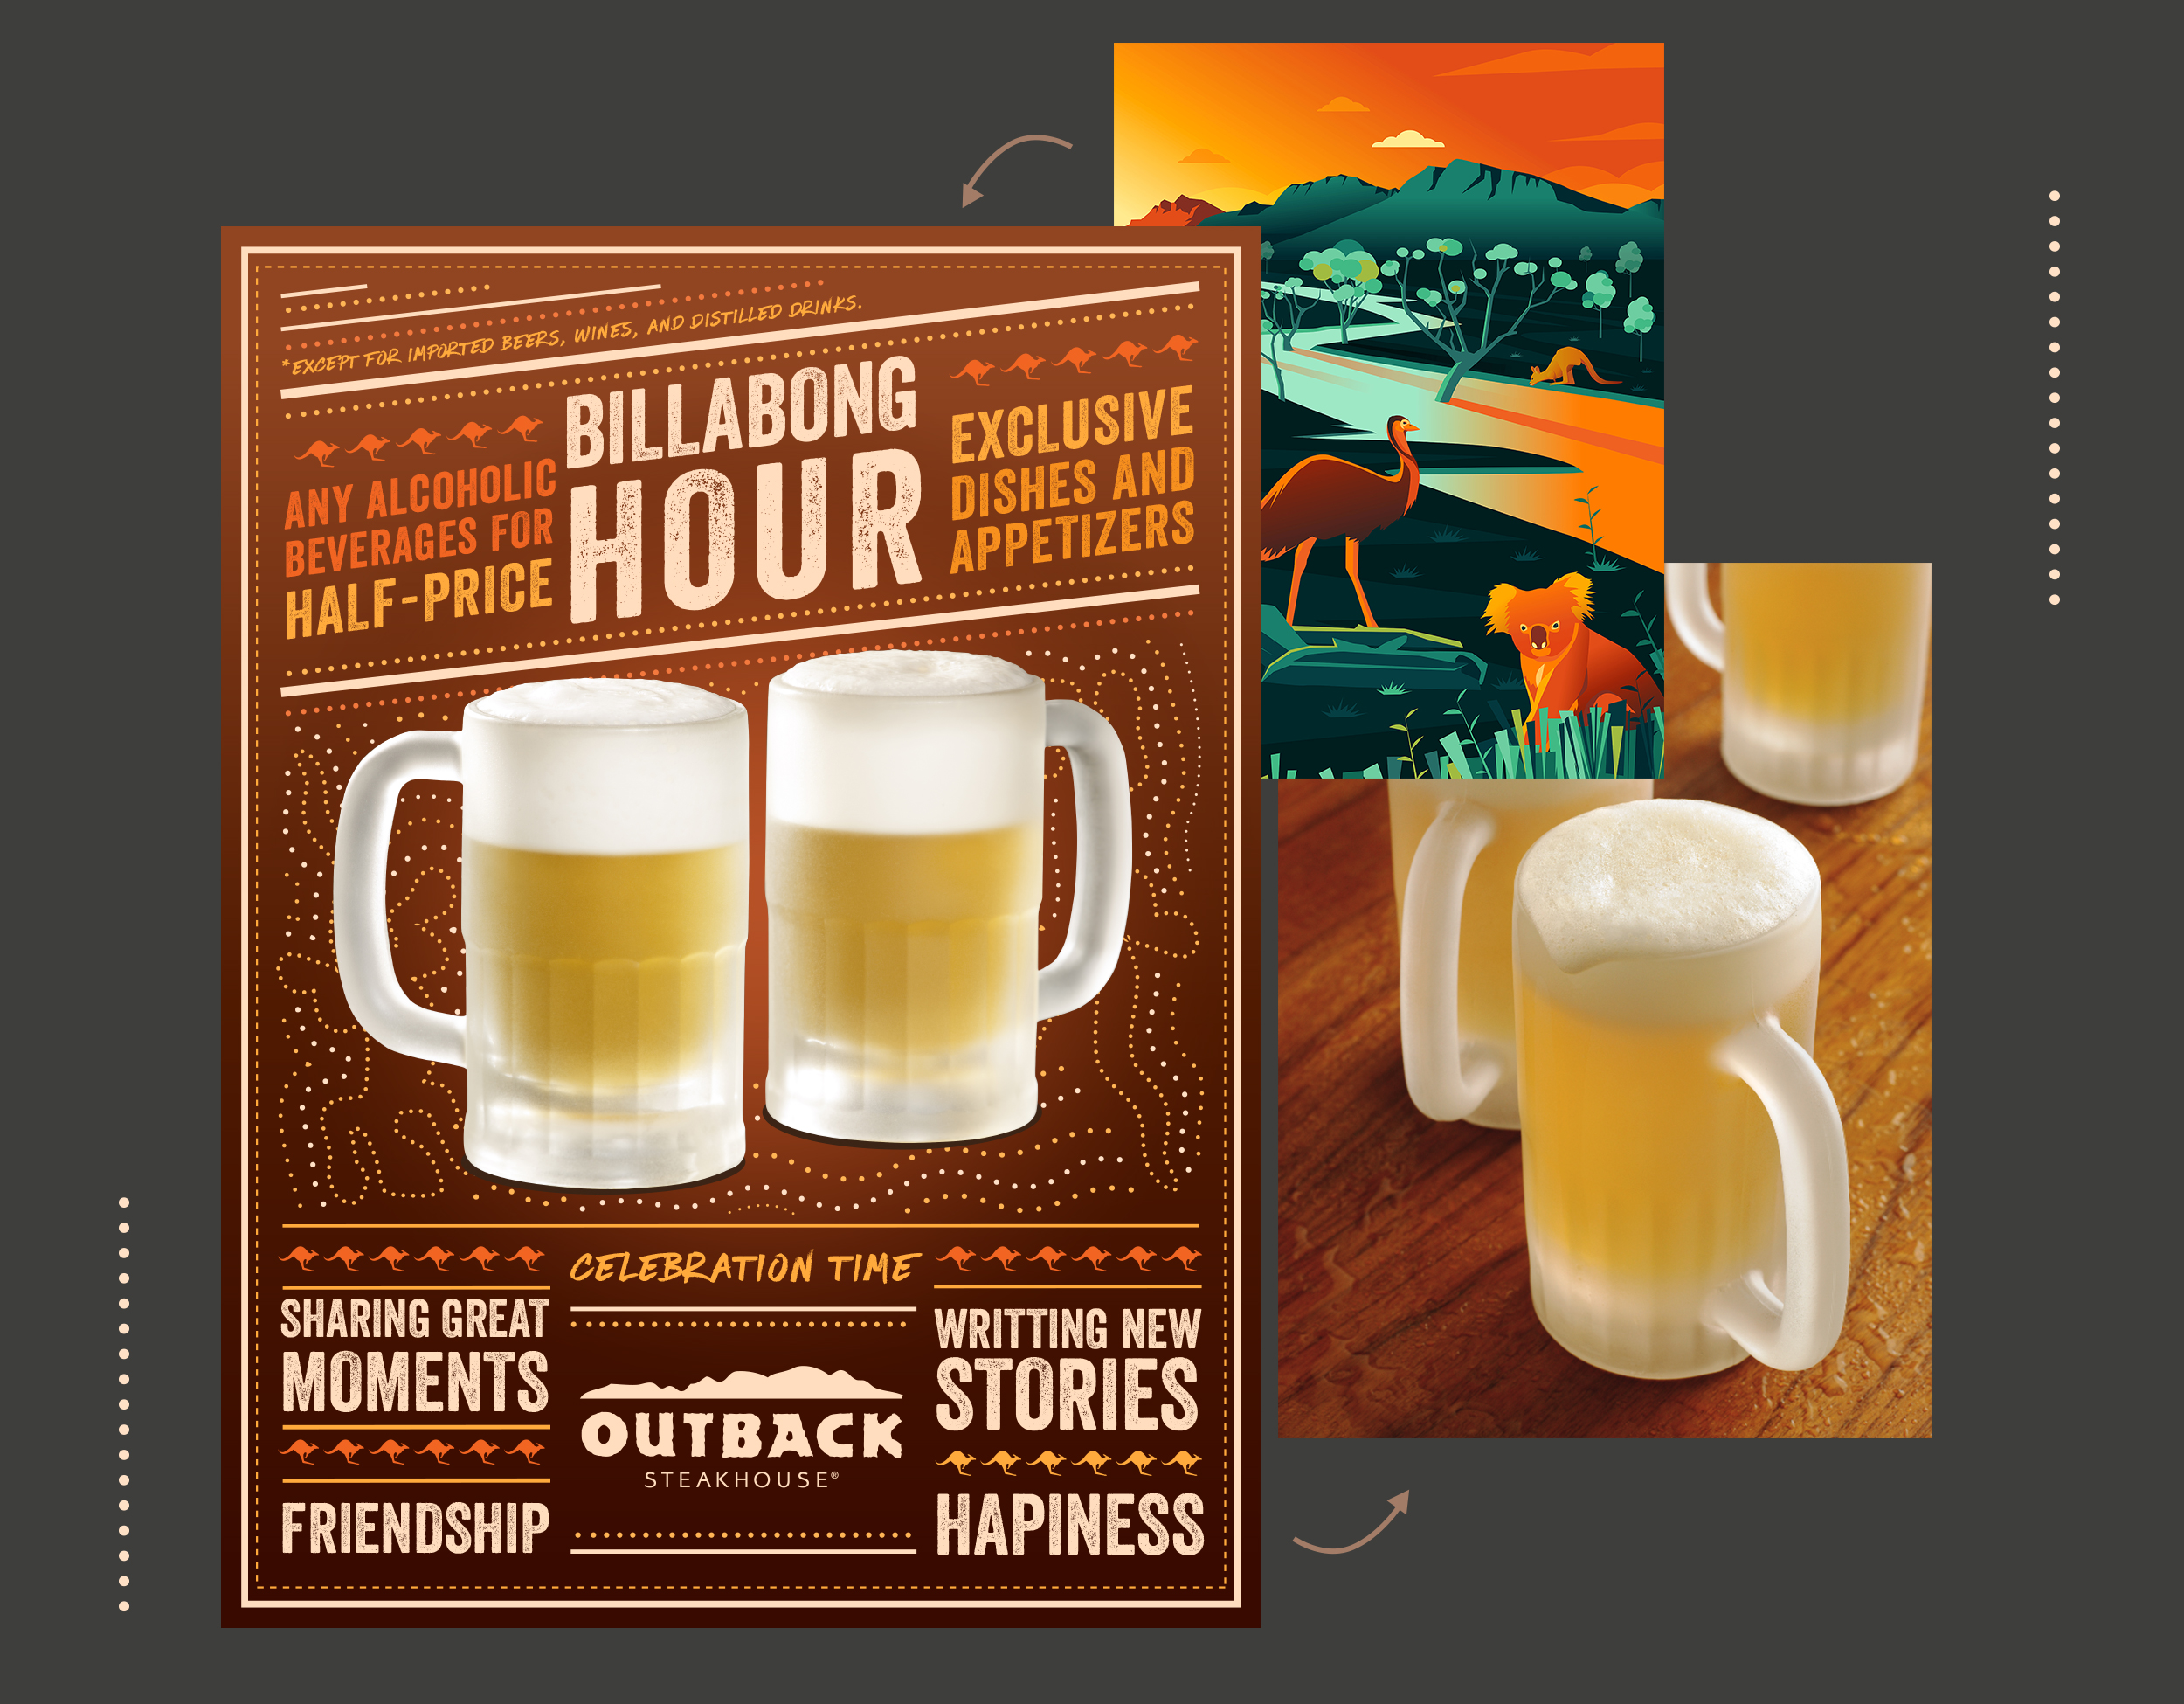 Billabong Hour